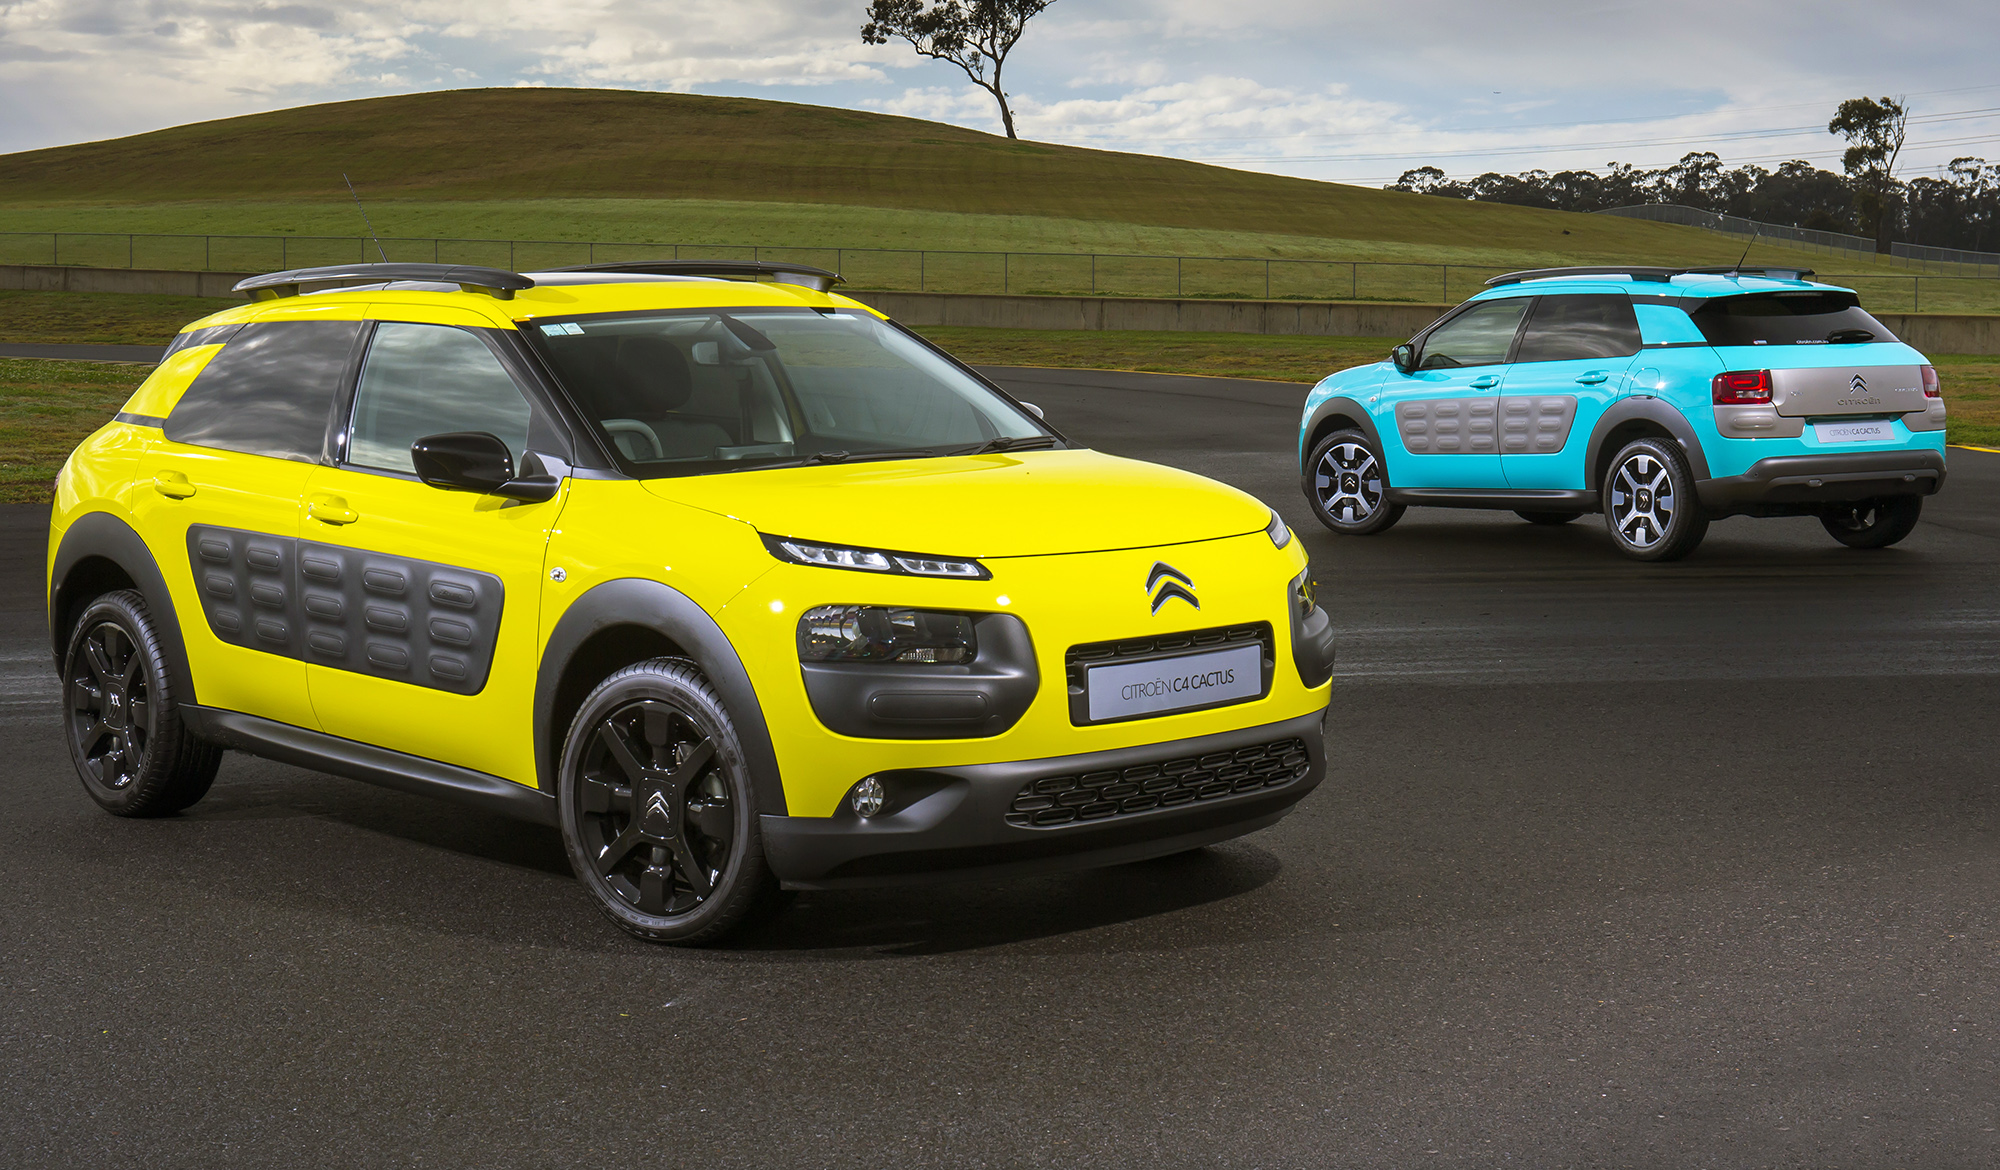 citroen c4 cactus pricing and specifications funky french suv from 26 990 photos caradvice. Black Bedroom Furniture Sets. Home Design Ideas